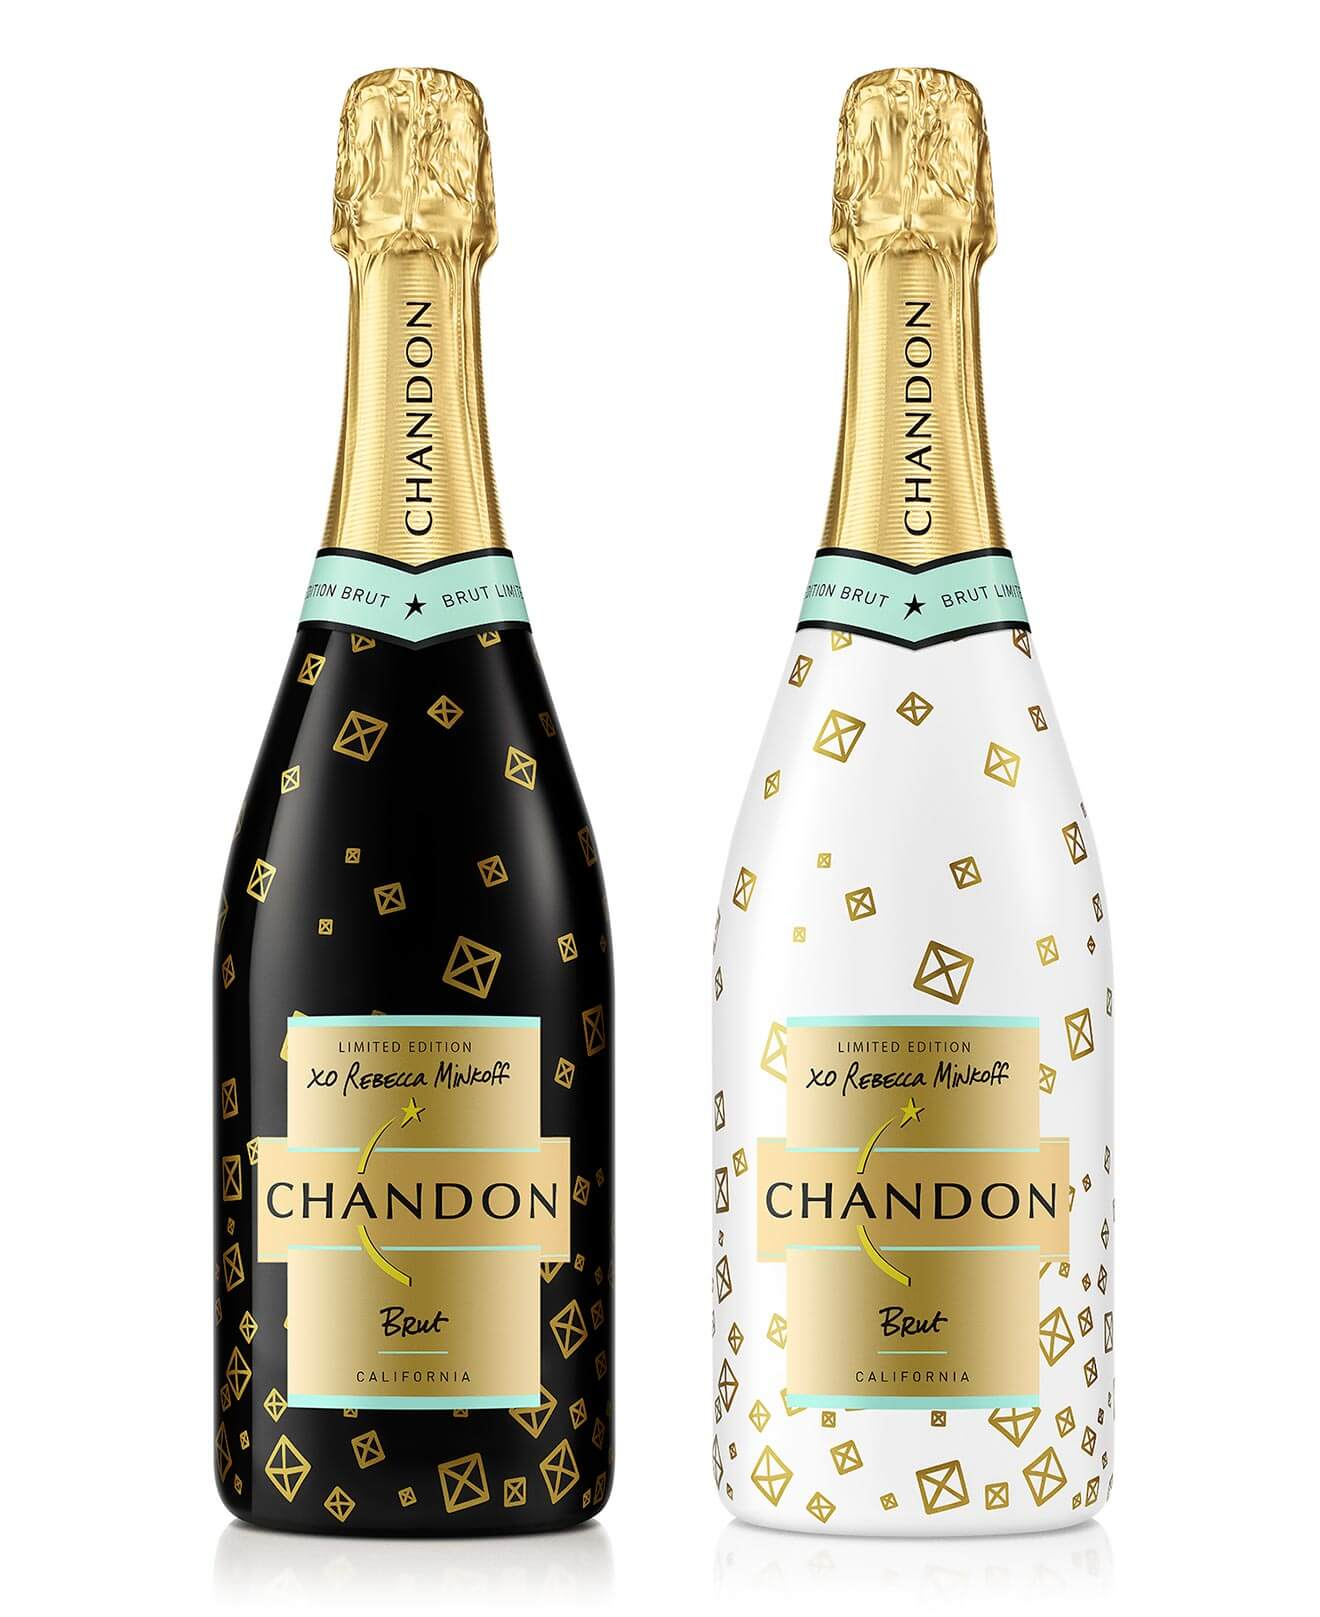 Limited Edition Rebecca Minkoff Chandon